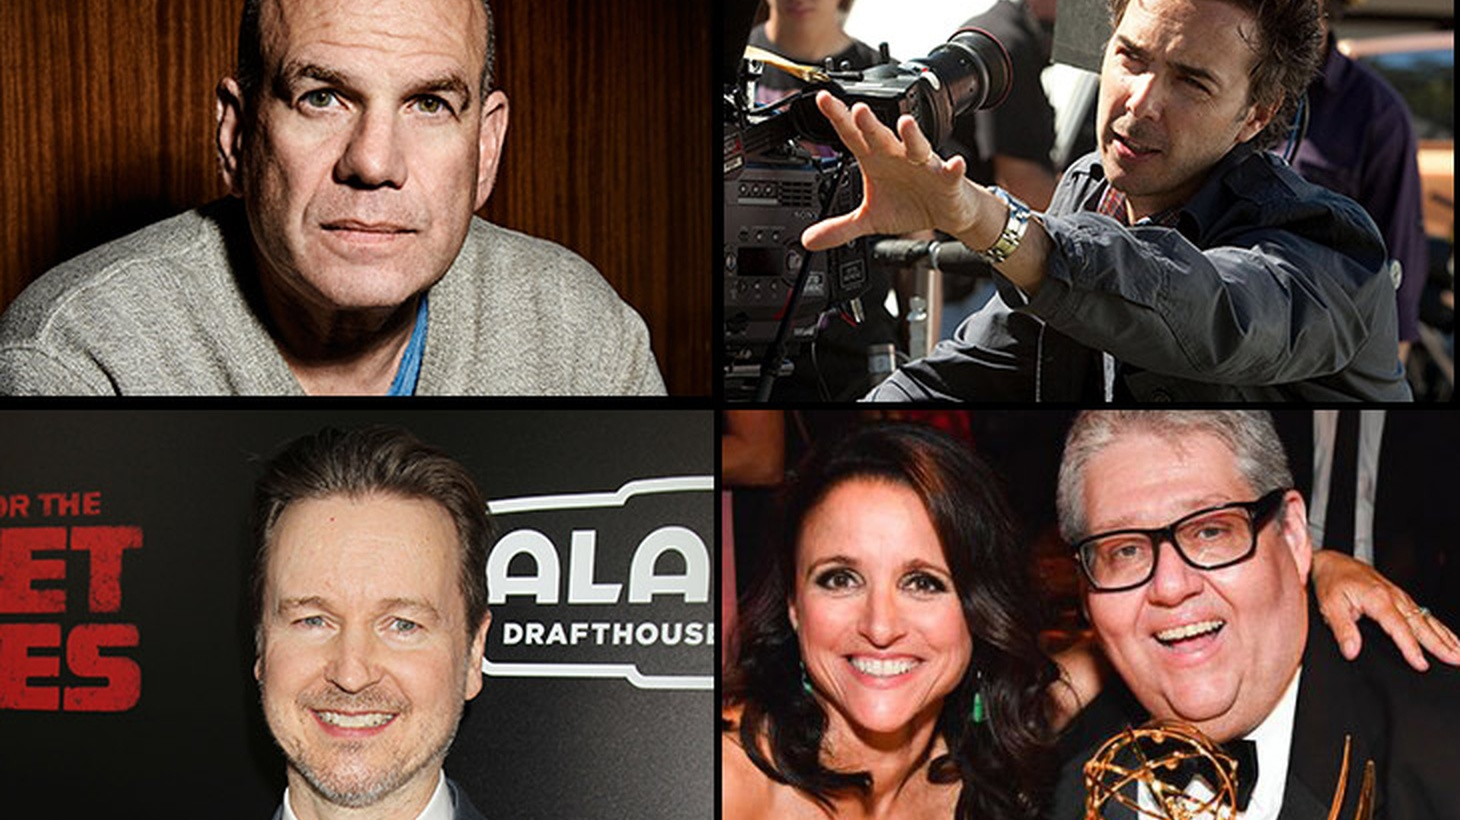 We have interesting guests on The Business, and sometimes our conversations are too long to fit into one show. This week we give you stories that were too good to leave on the cutting room floor, including some sharp insights on making it in the industry from David Mandel, David Simon, Shawn Levy and Matt Reeves.